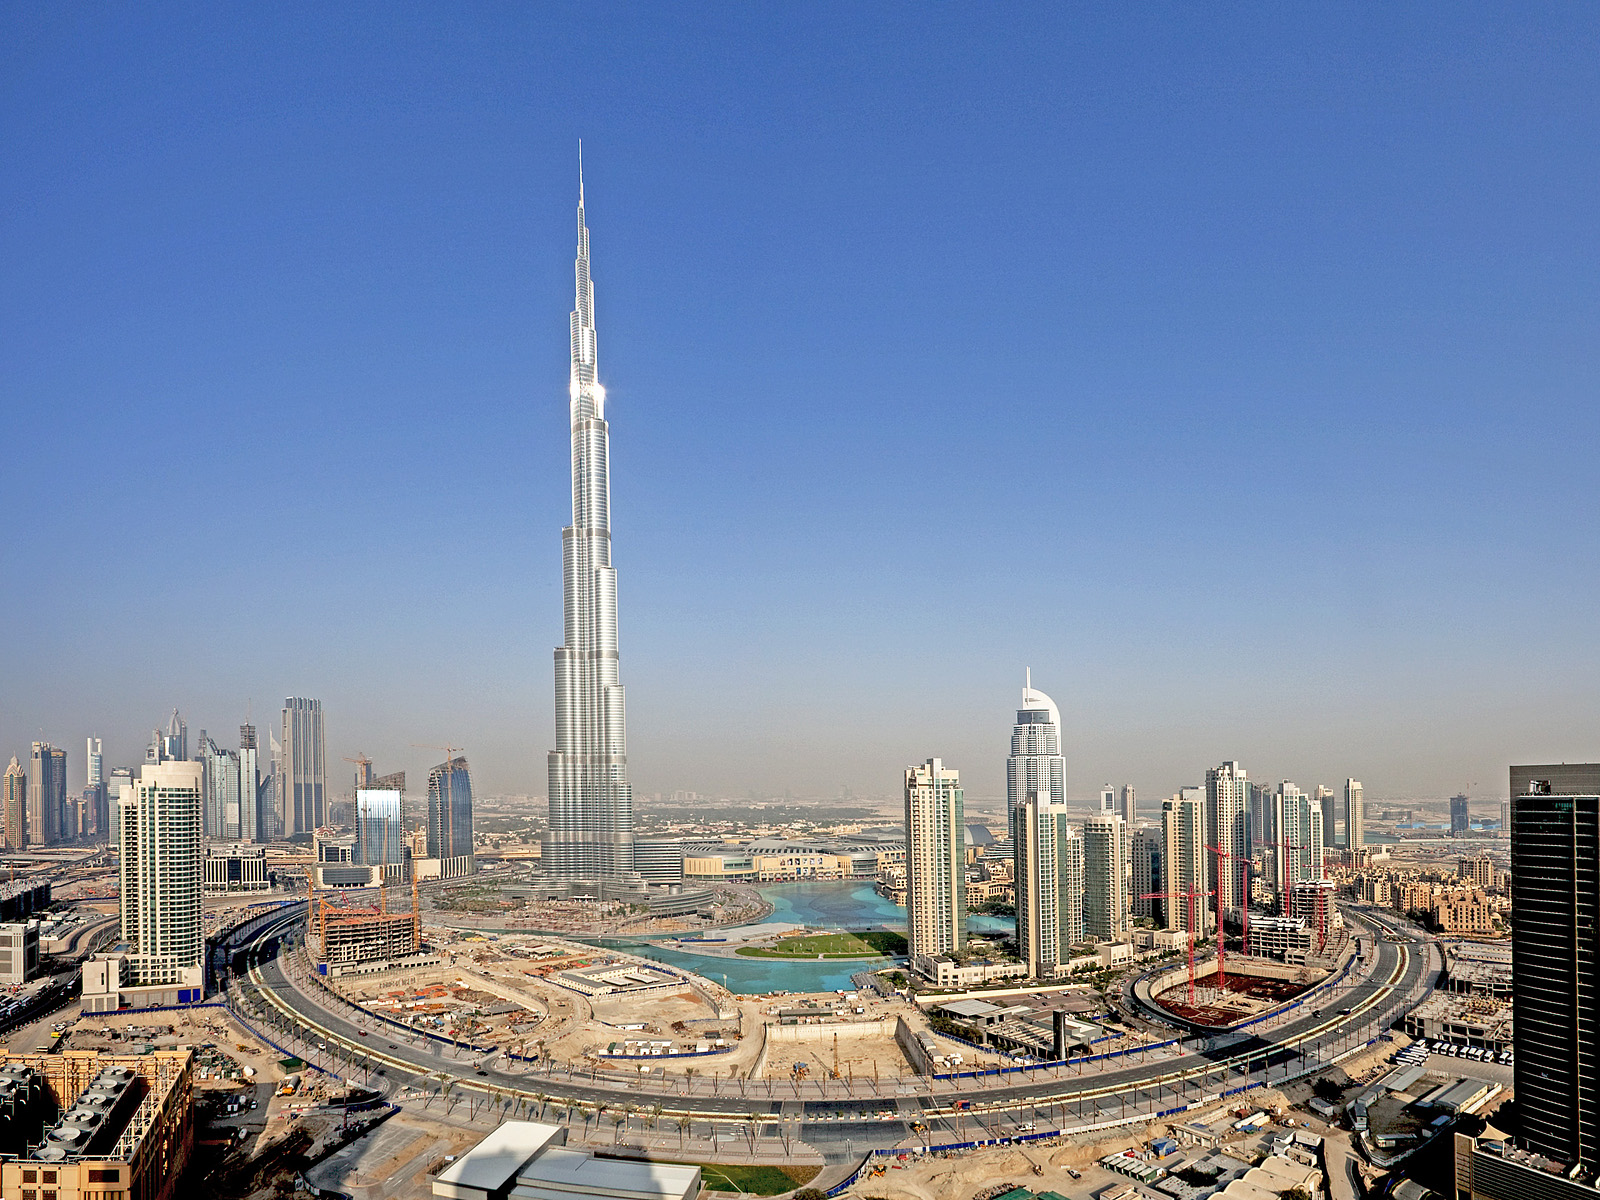 burj khalifa megaconstrucciones extreme engineering. Black Bedroom Furniture Sets. Home Design Ideas